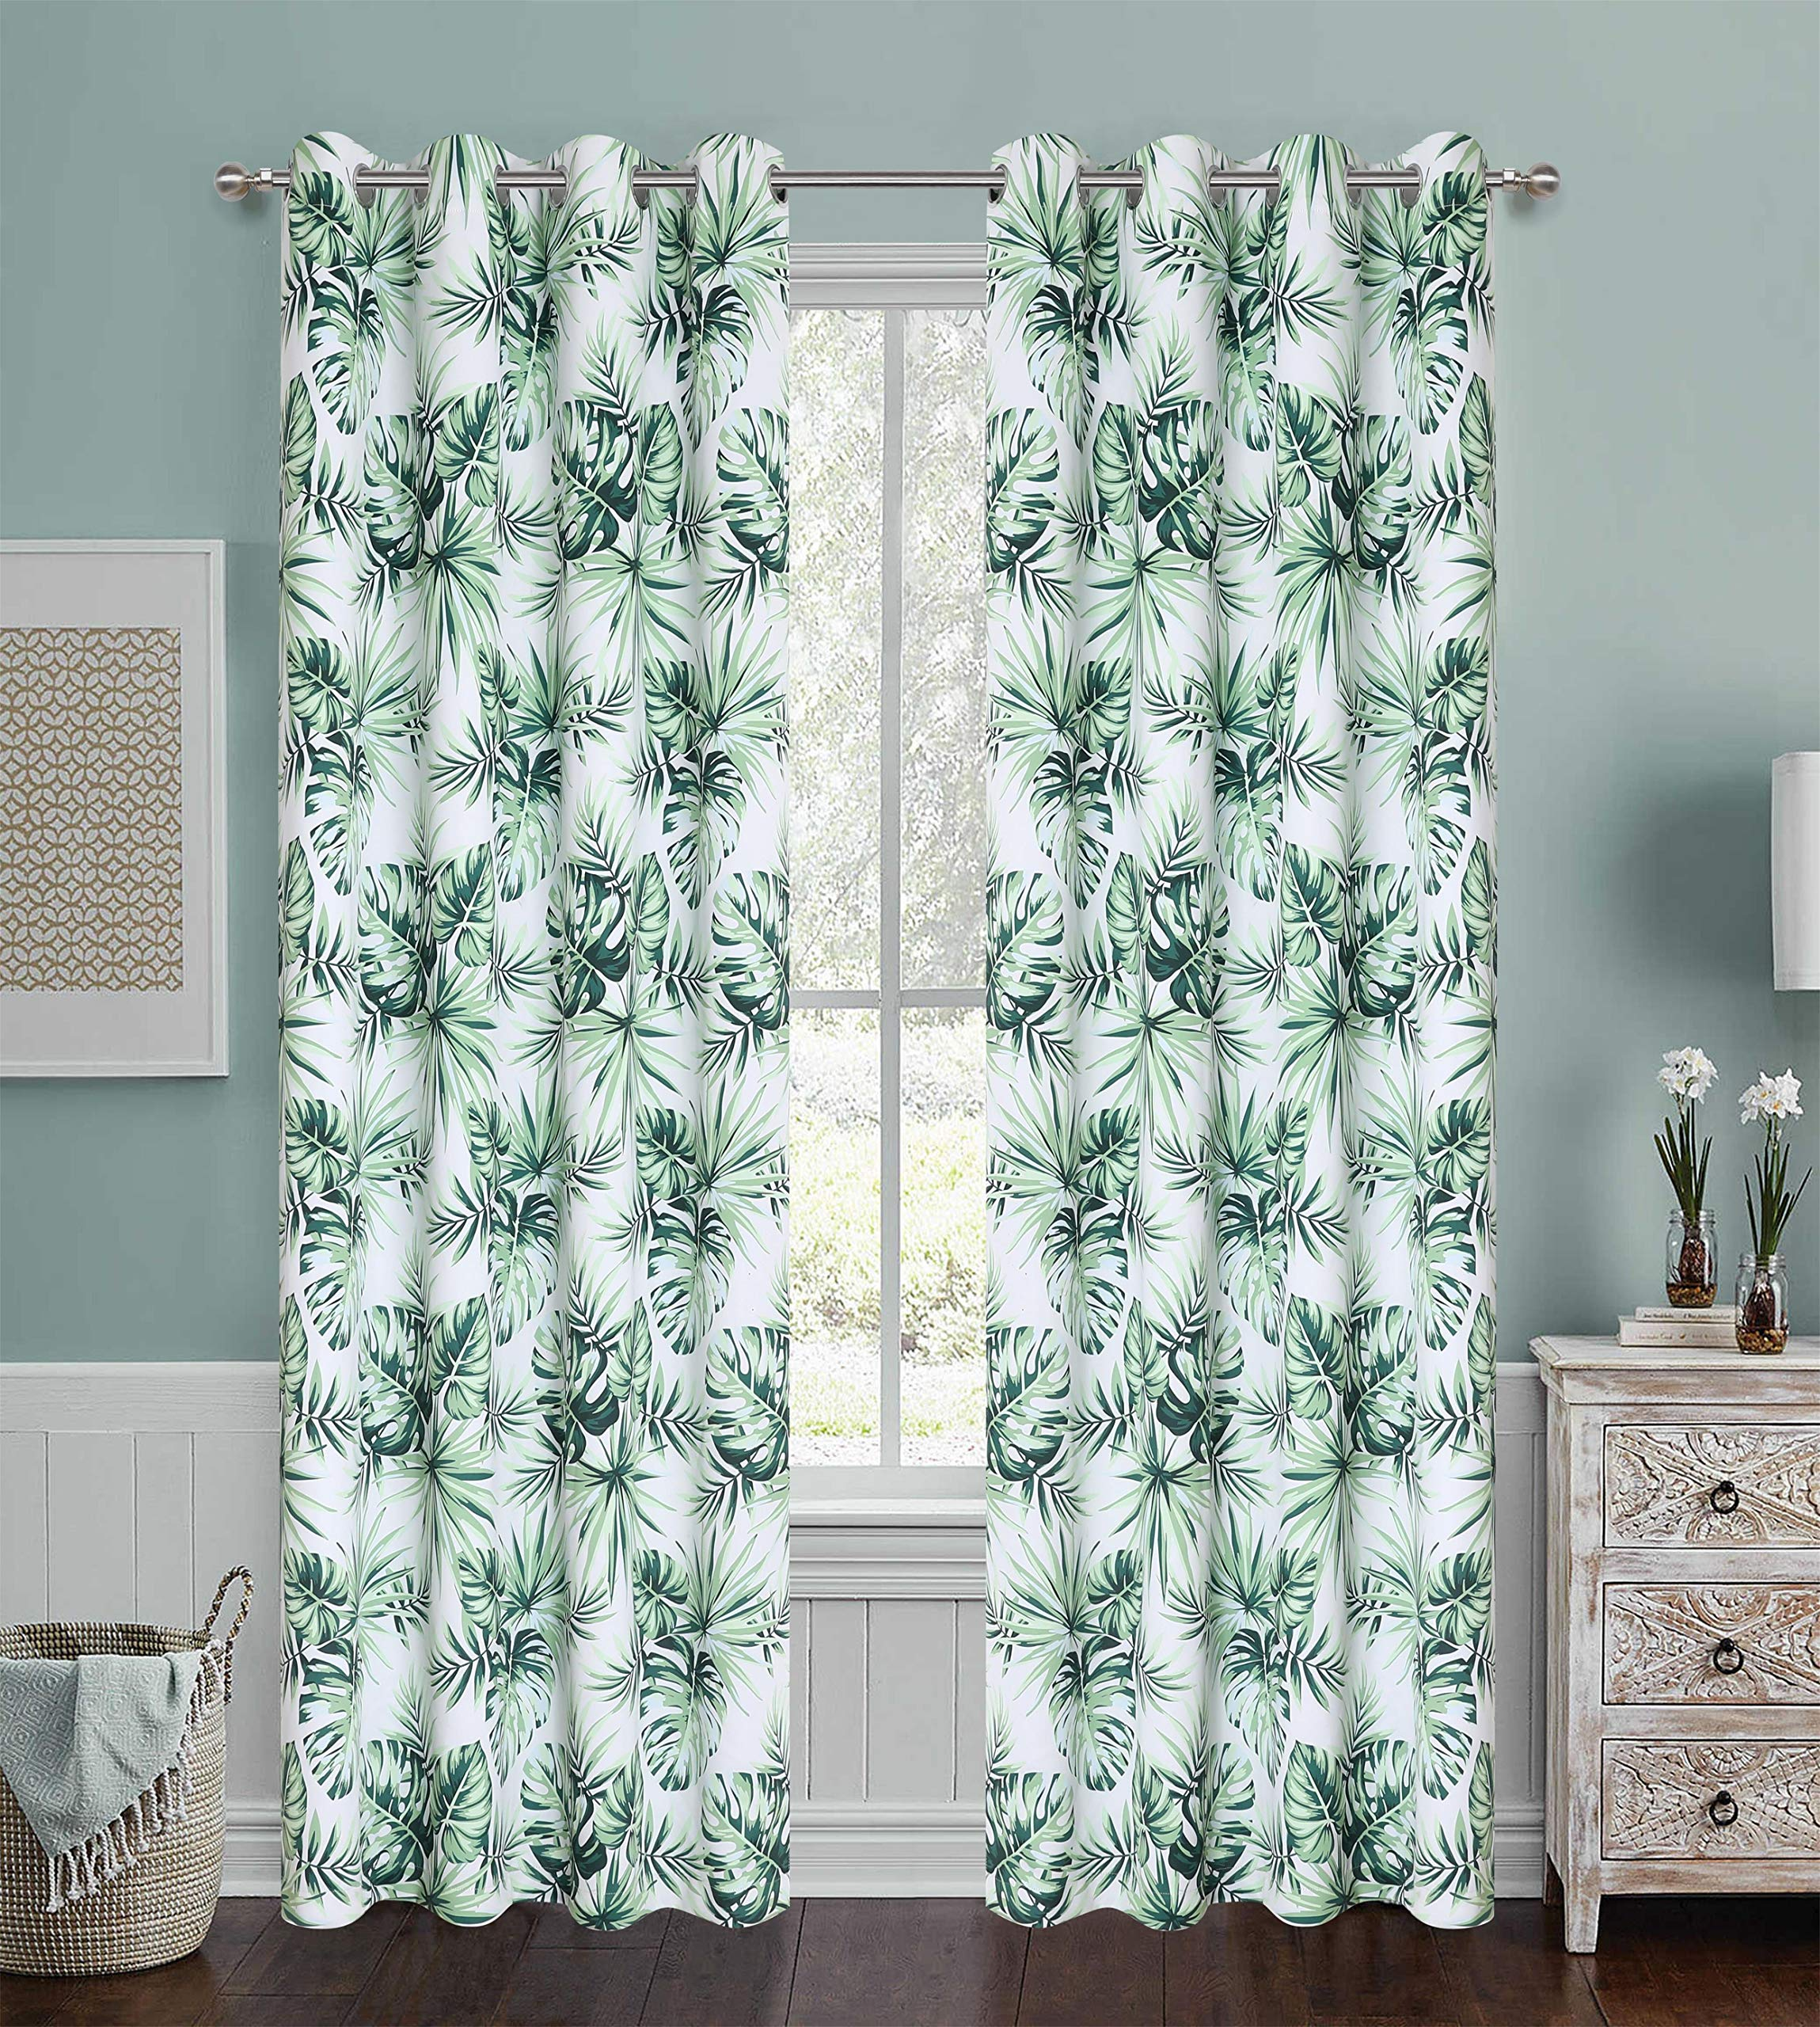 Floral Printed Blackout Curtains Spring Plant Green Digital Print Colorful Palm Leaves Home Fashion Window Draperies for Nursery Kids Heavy and Soft Room Darkening Grommet 54'' Wide by 95'' Long 1 Pair by Gold Dandelion